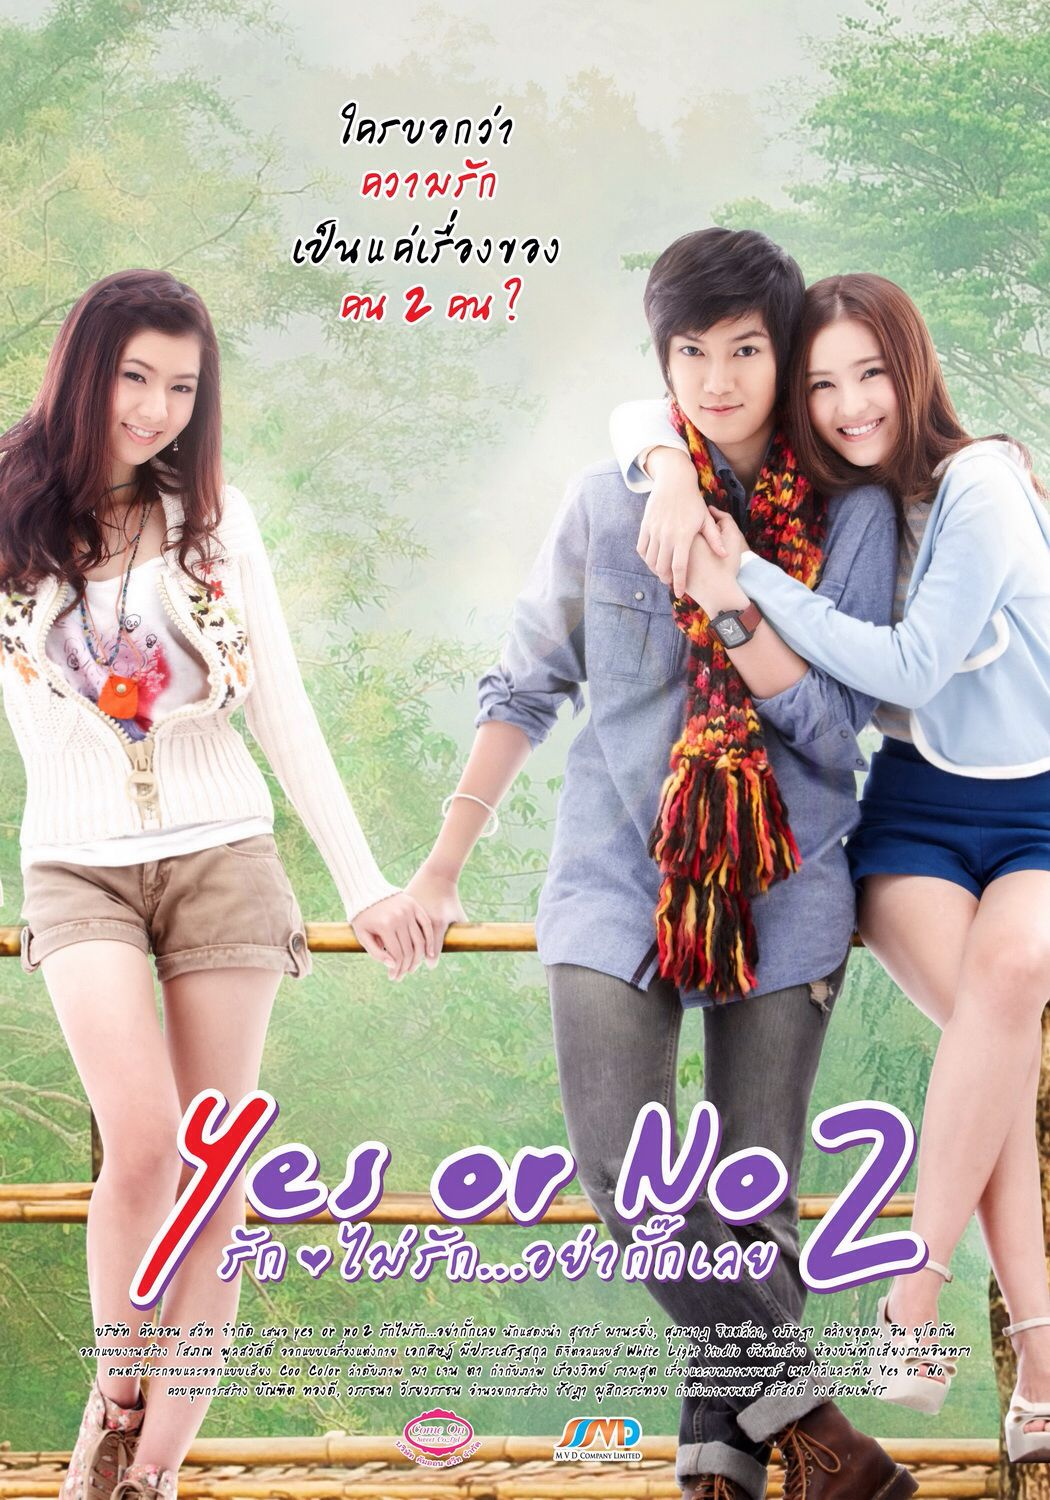 Yes or no 2 2 movie, Thai drama, Friend of god